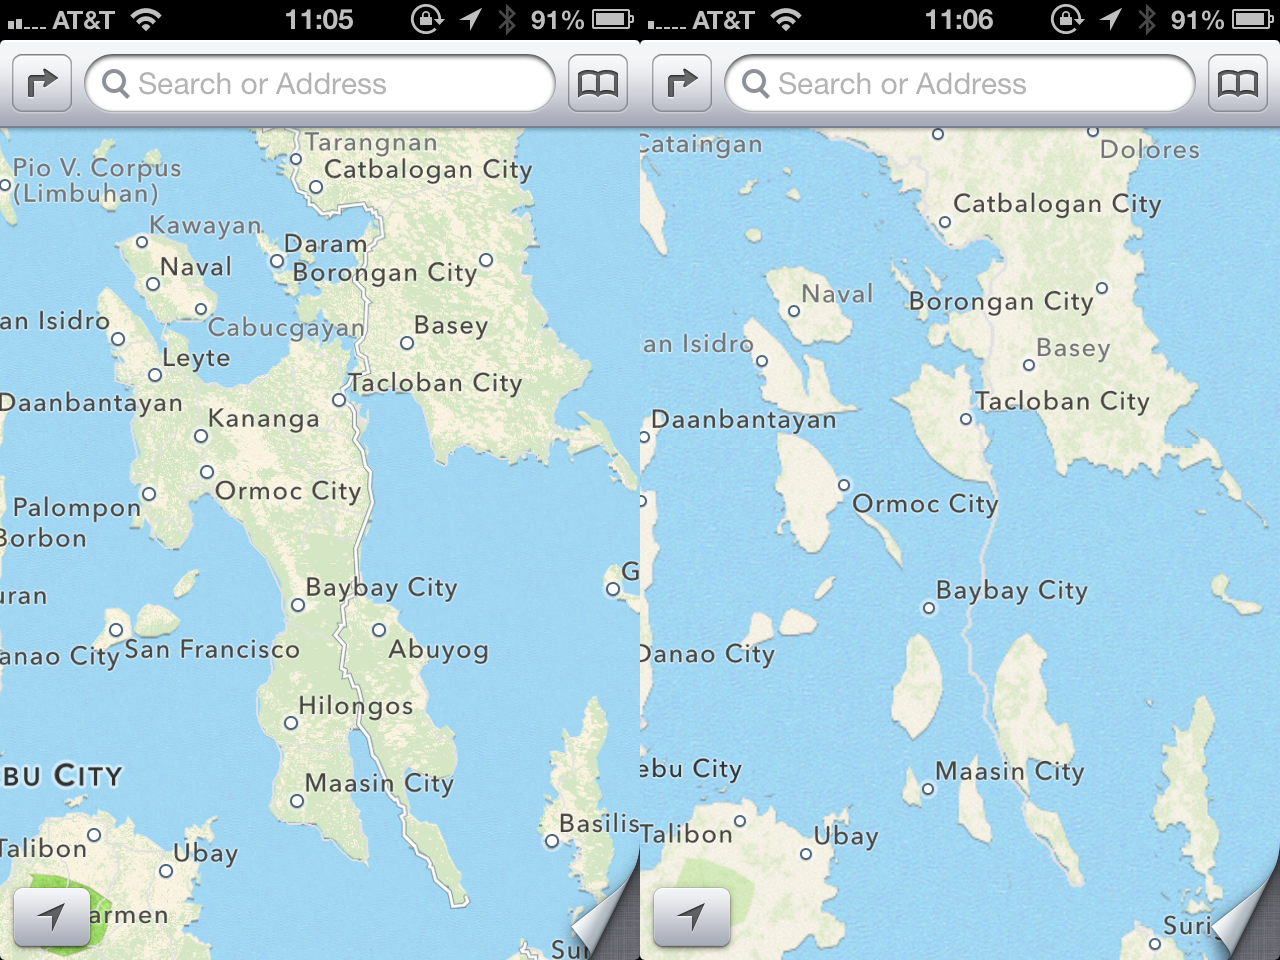 3607274eec5db Entire Philippine island disappears in iOS6 map glitch | SciTech ...